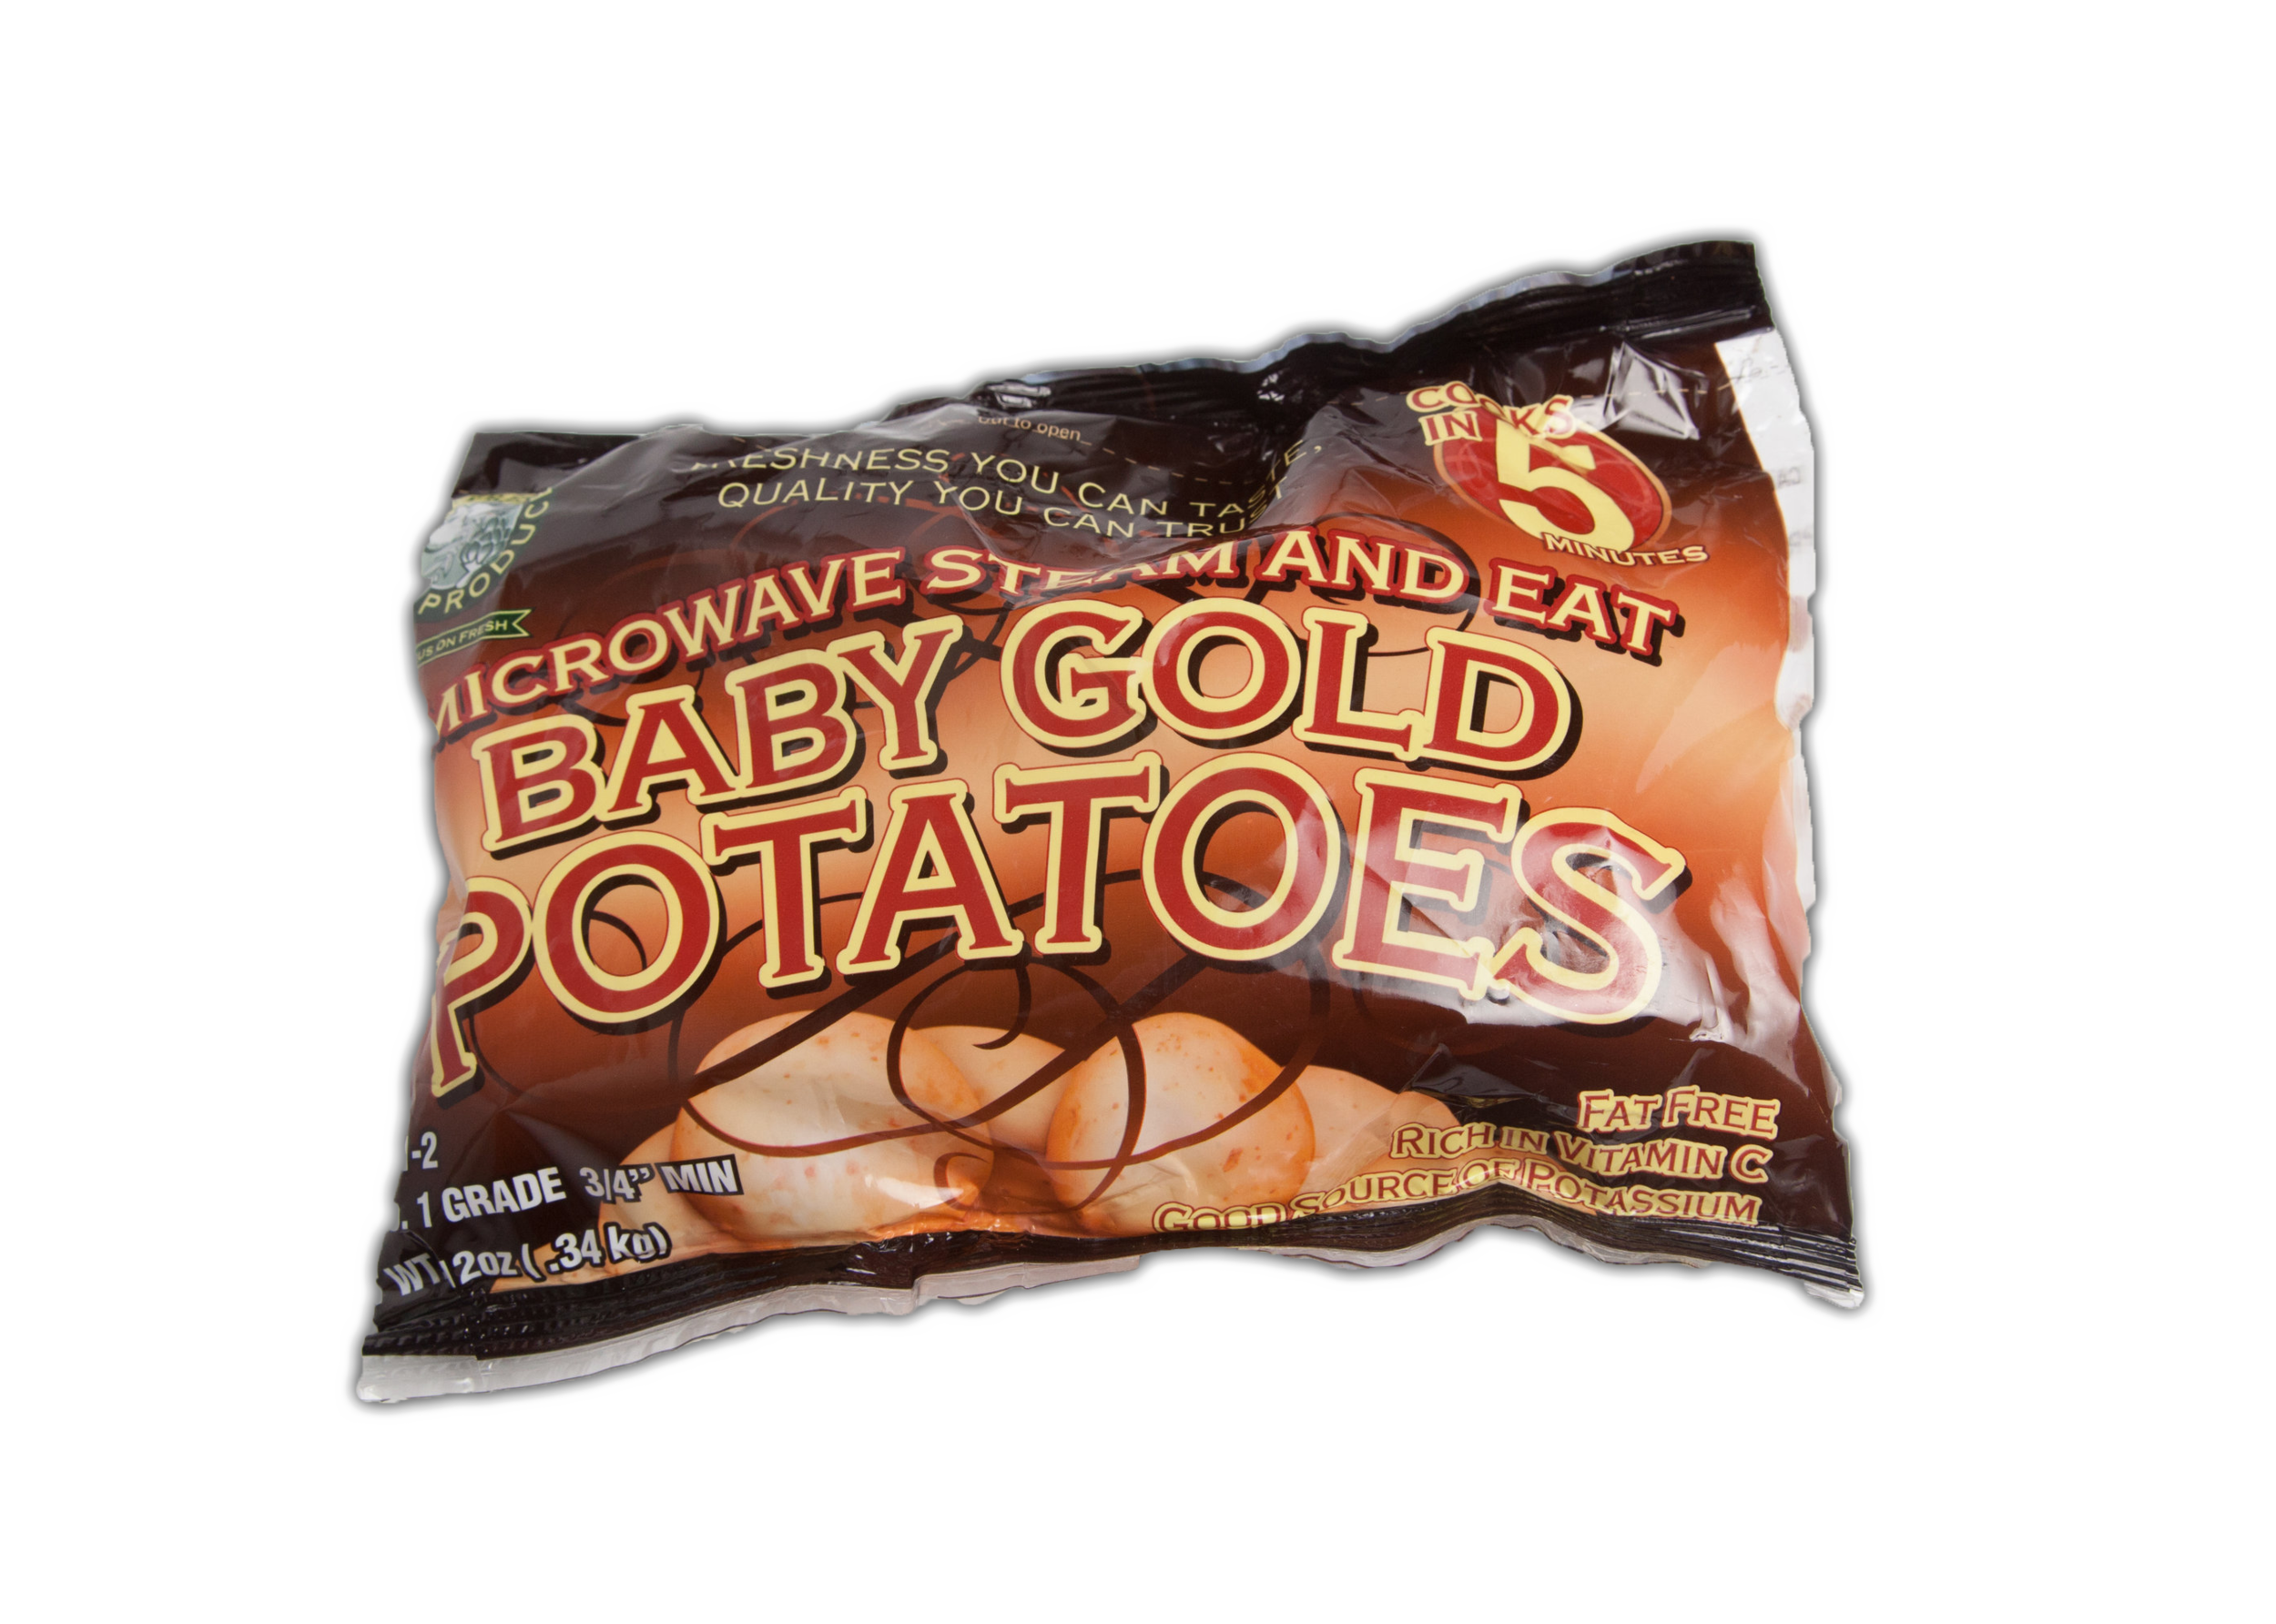 Packaged Gold Potatoes - These delicious wonders are a great substitute for a russet potato. They are so creamy and tender they are perfect roasted or as mashed potatoes! Our gold potatoes are available in 12 ounce steamer bags, 24 ounce (C size) bags, 2 pound (B size) bags, and 5 pound (US #1) bags.